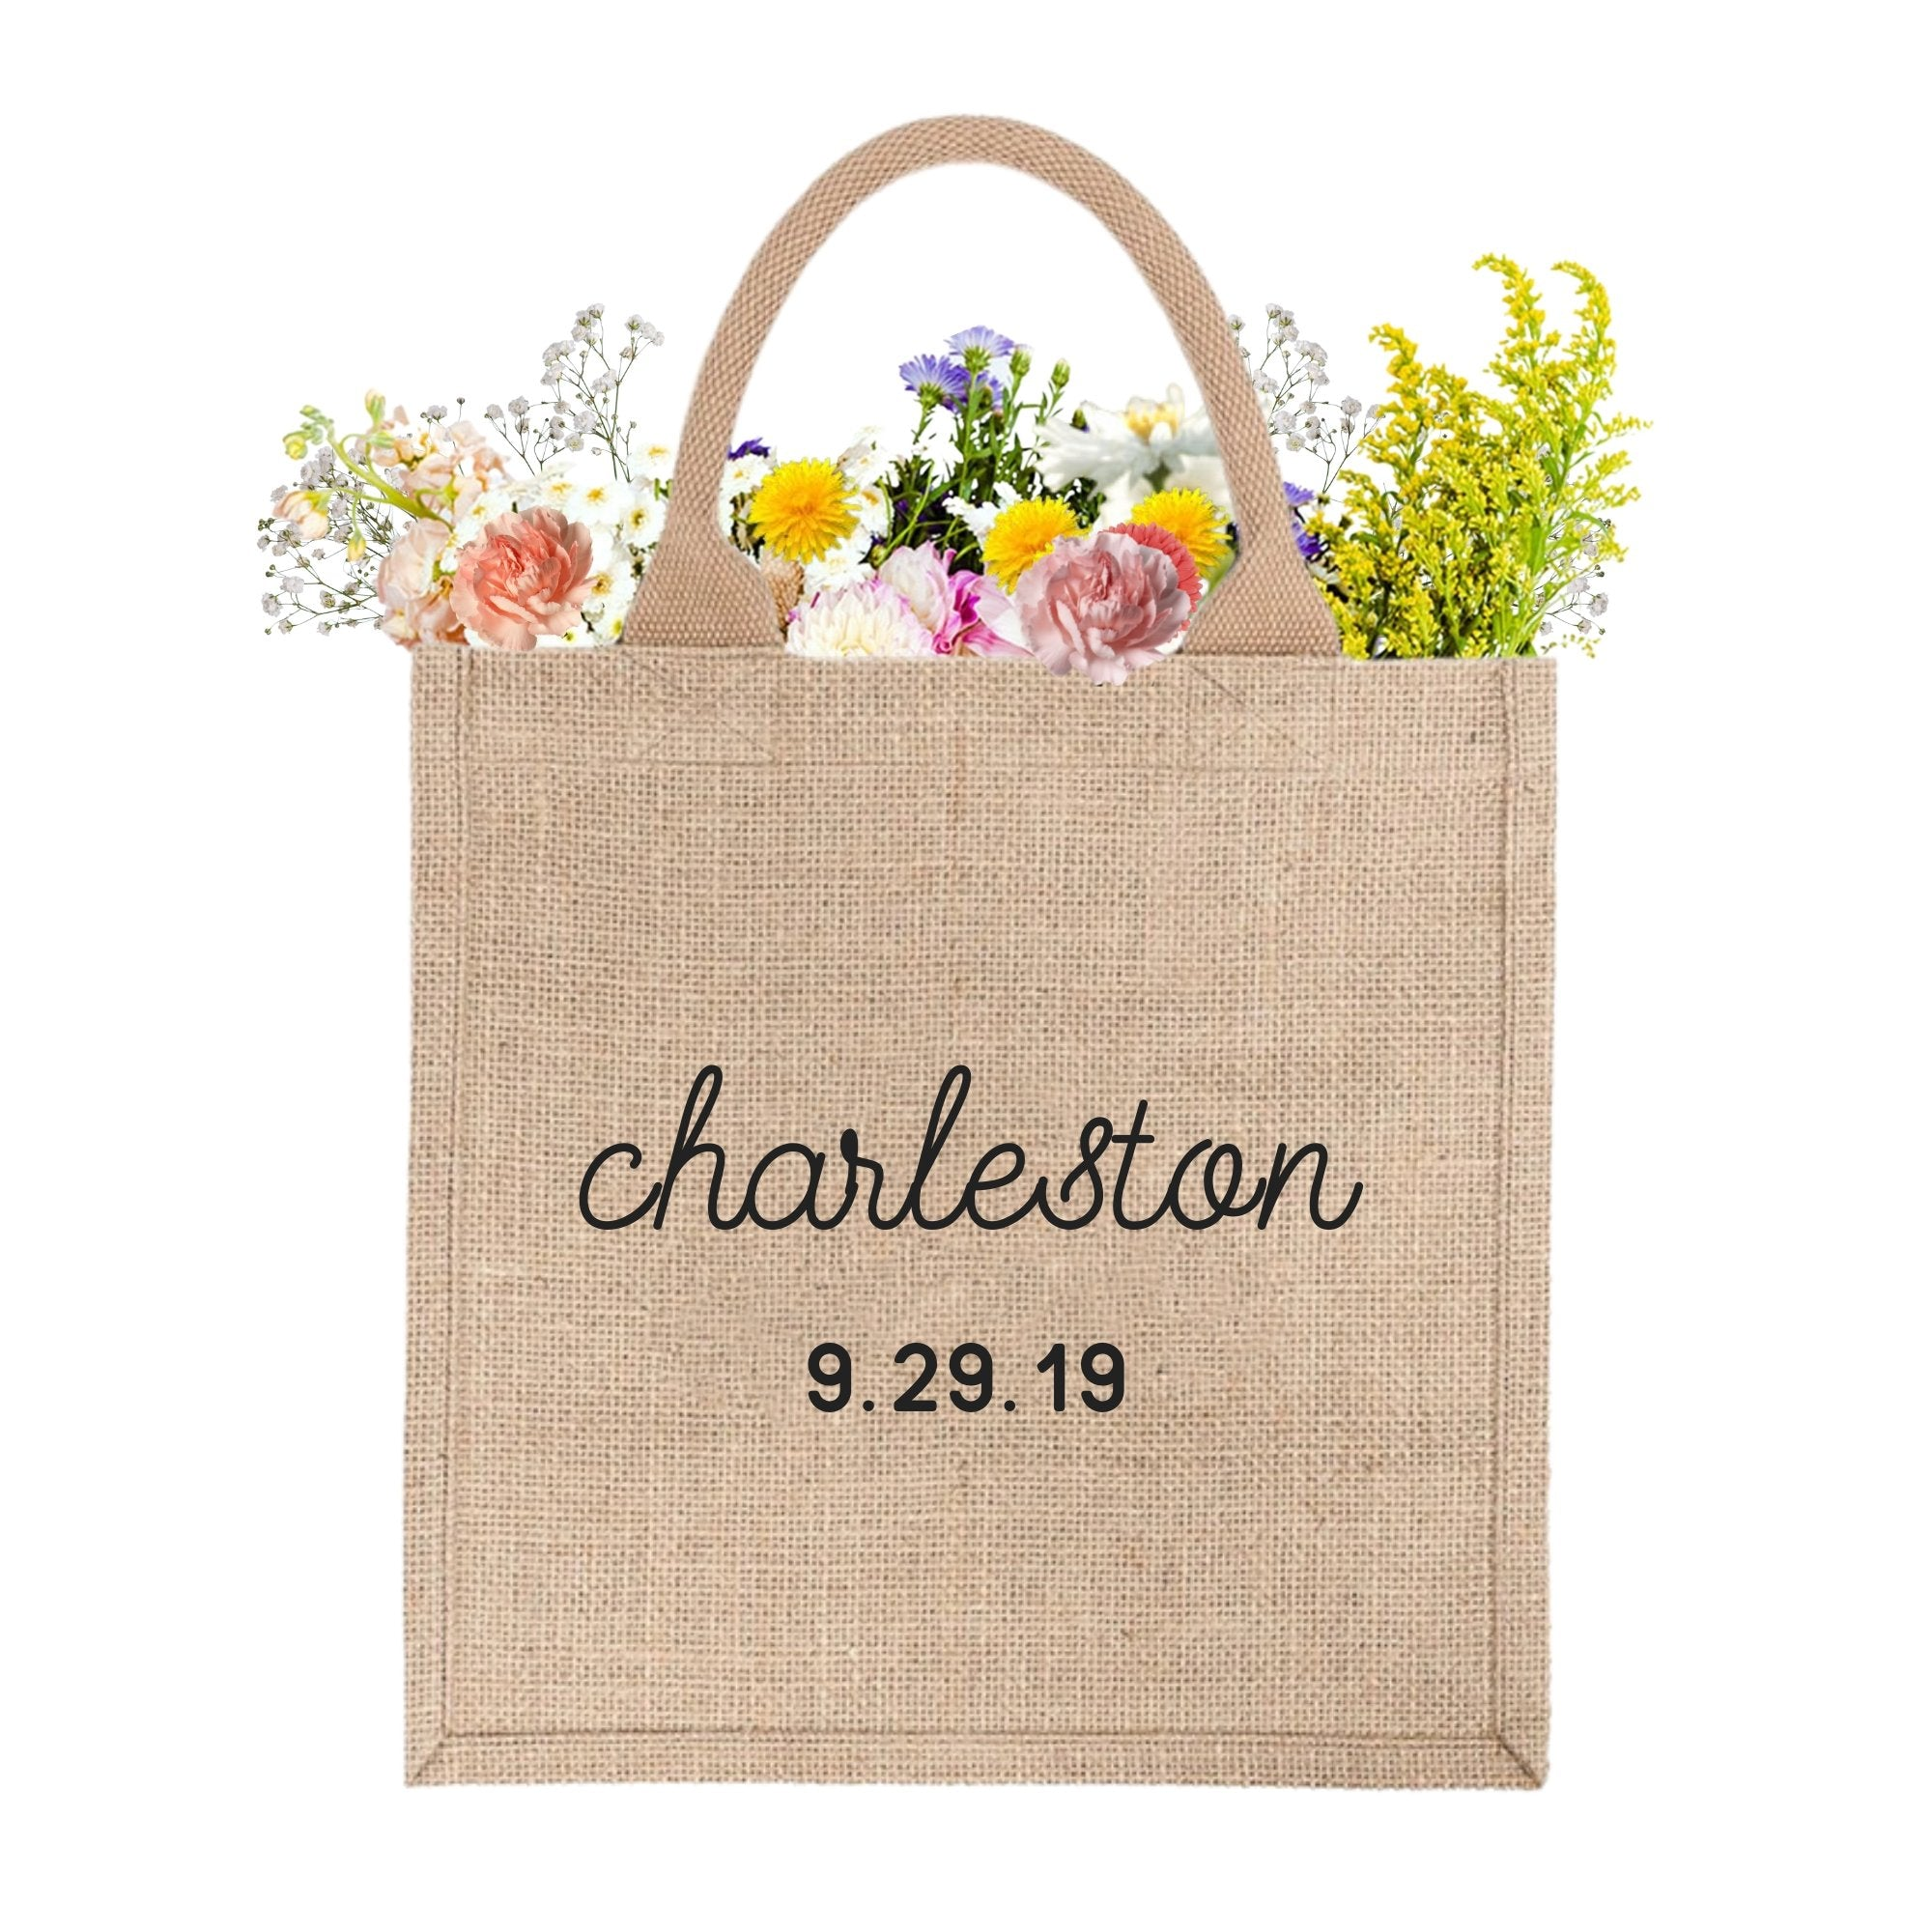 Welcome Bag - Custom City & Date, Jute Tote - Sprinkled With Pink #bachelorette #custom #gifts